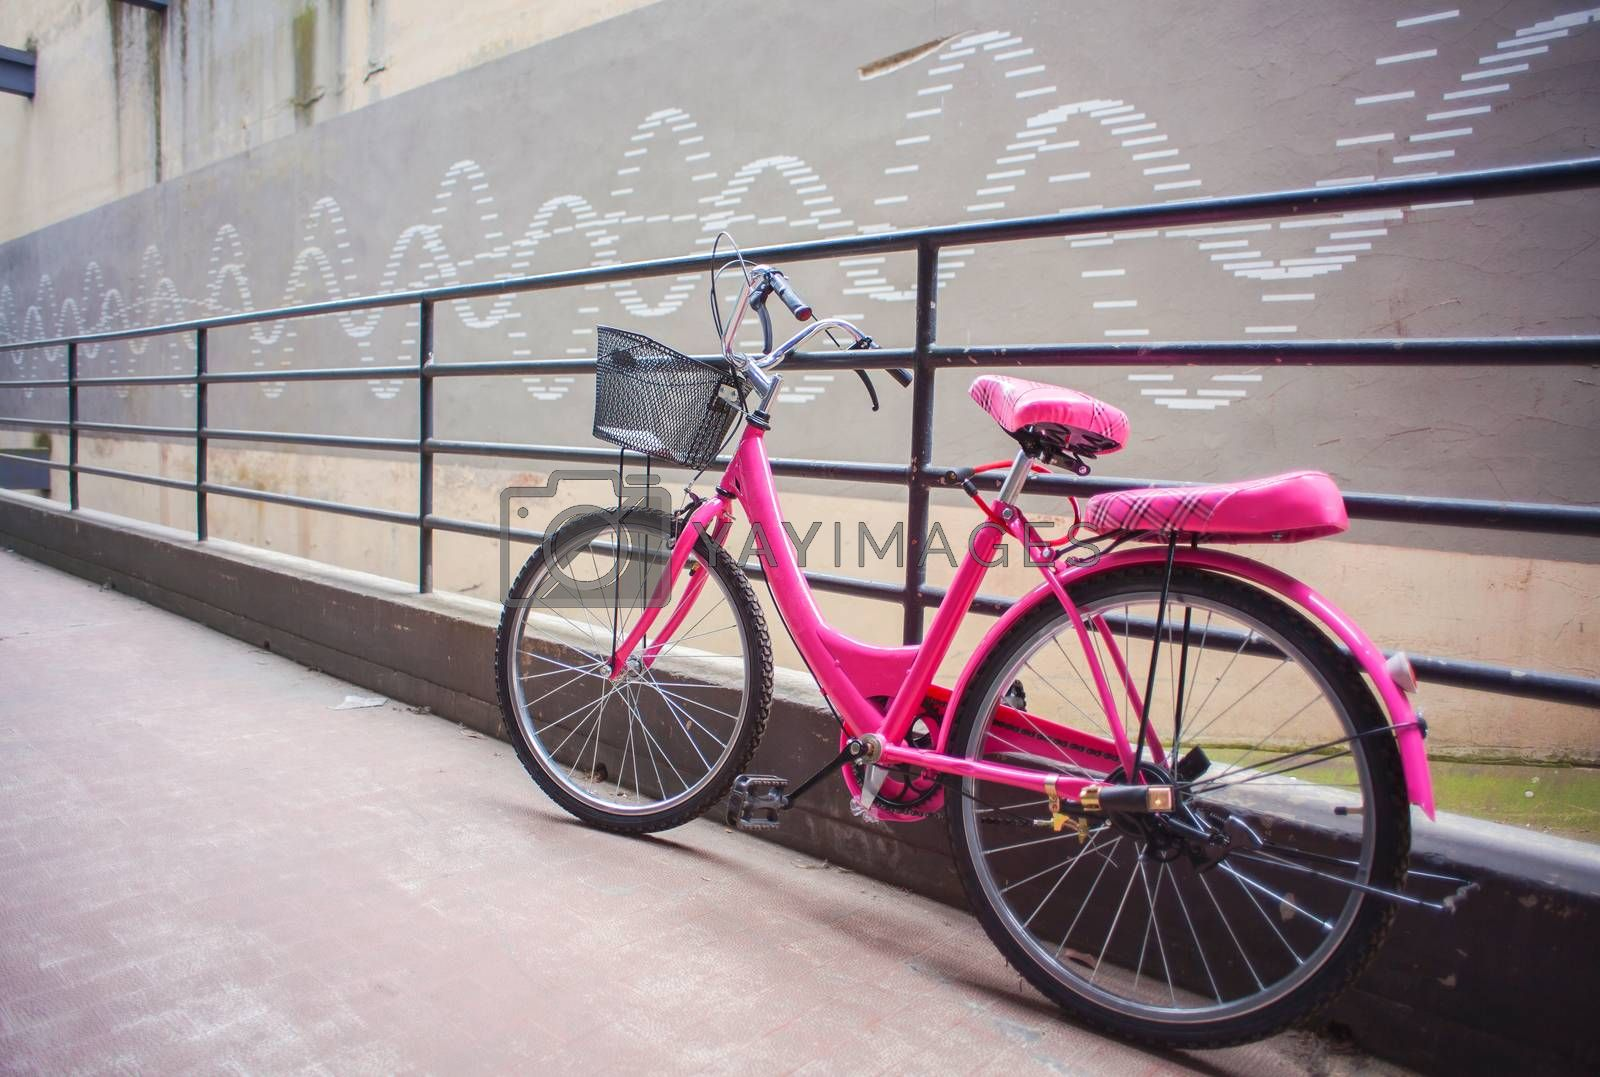 View of pink bicycle next to the iron railing